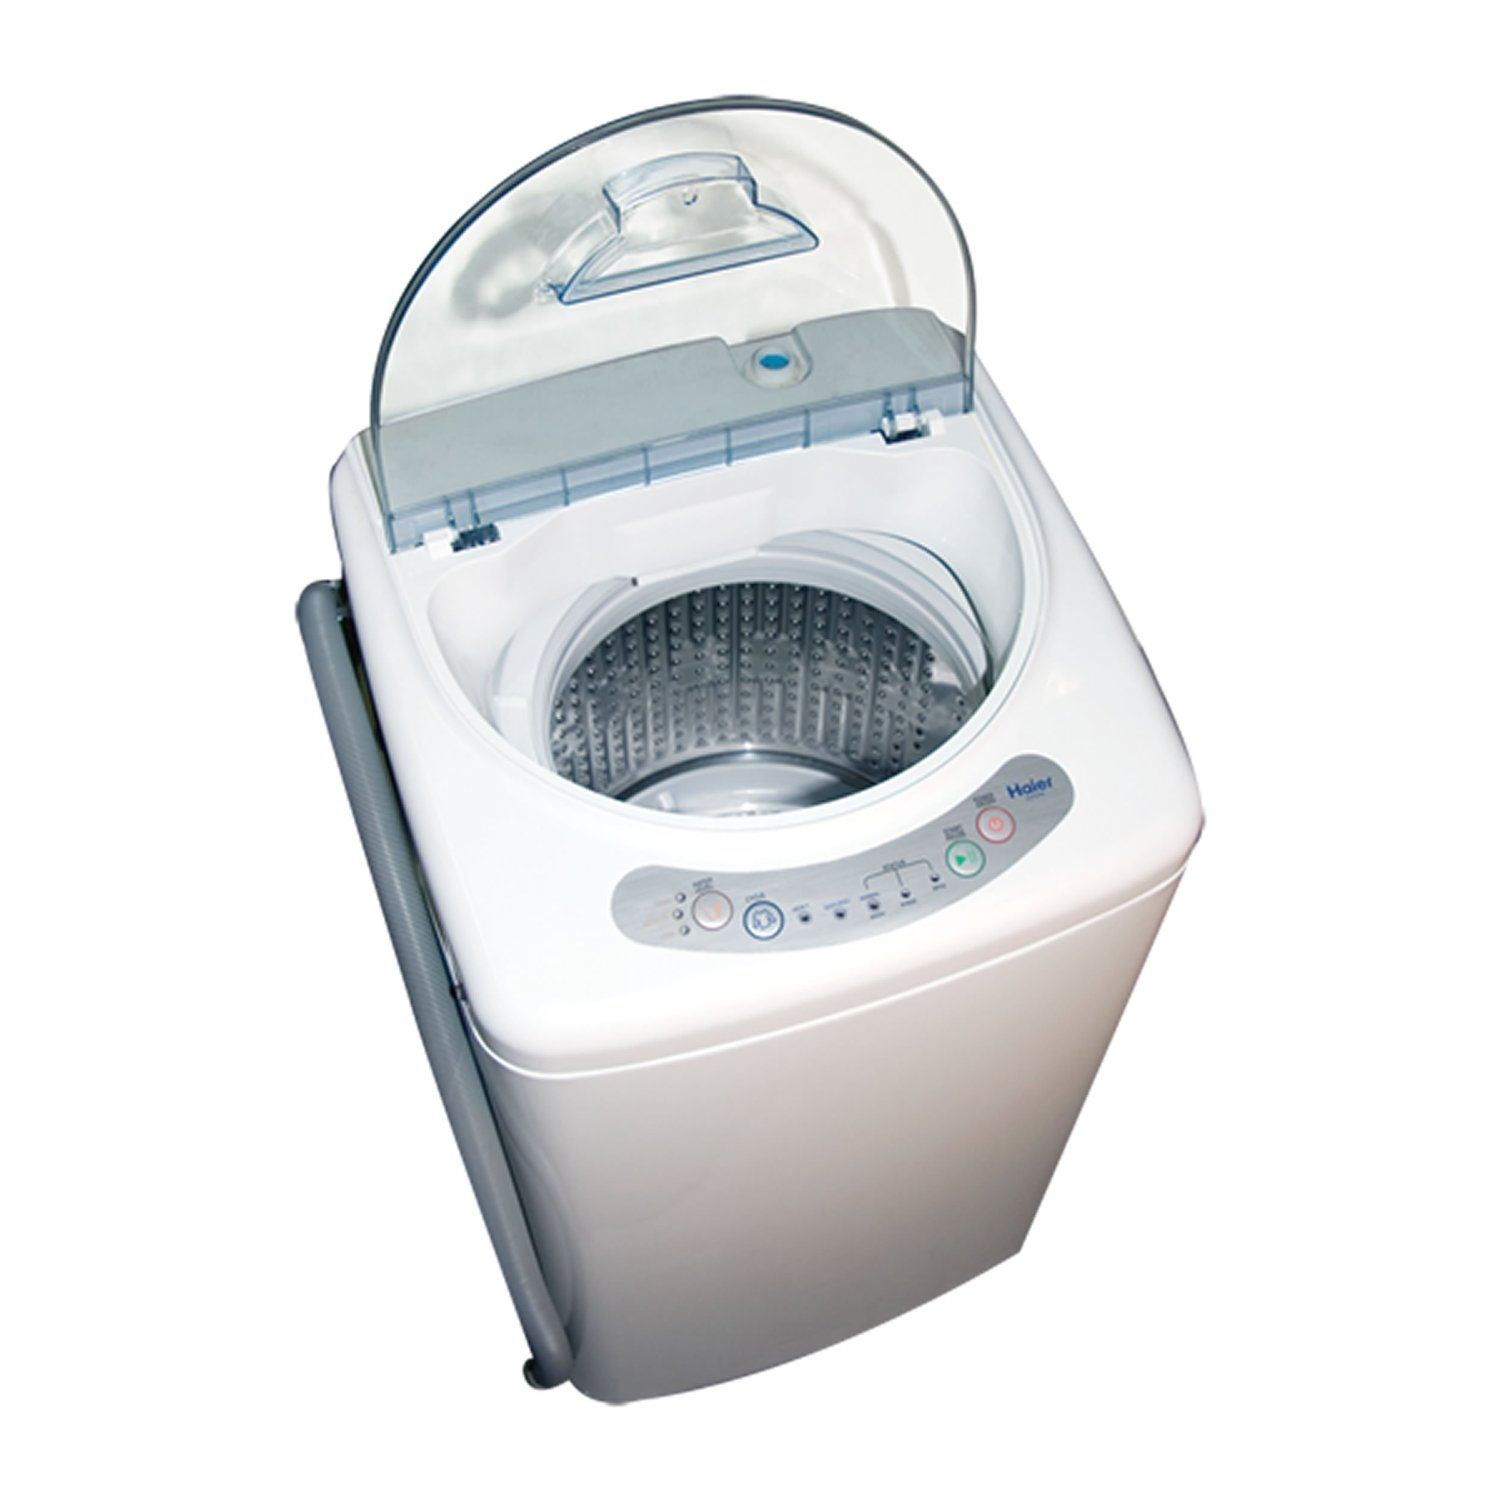 Perfect Used Apartment Size Washer and Dryer | HomesFeed